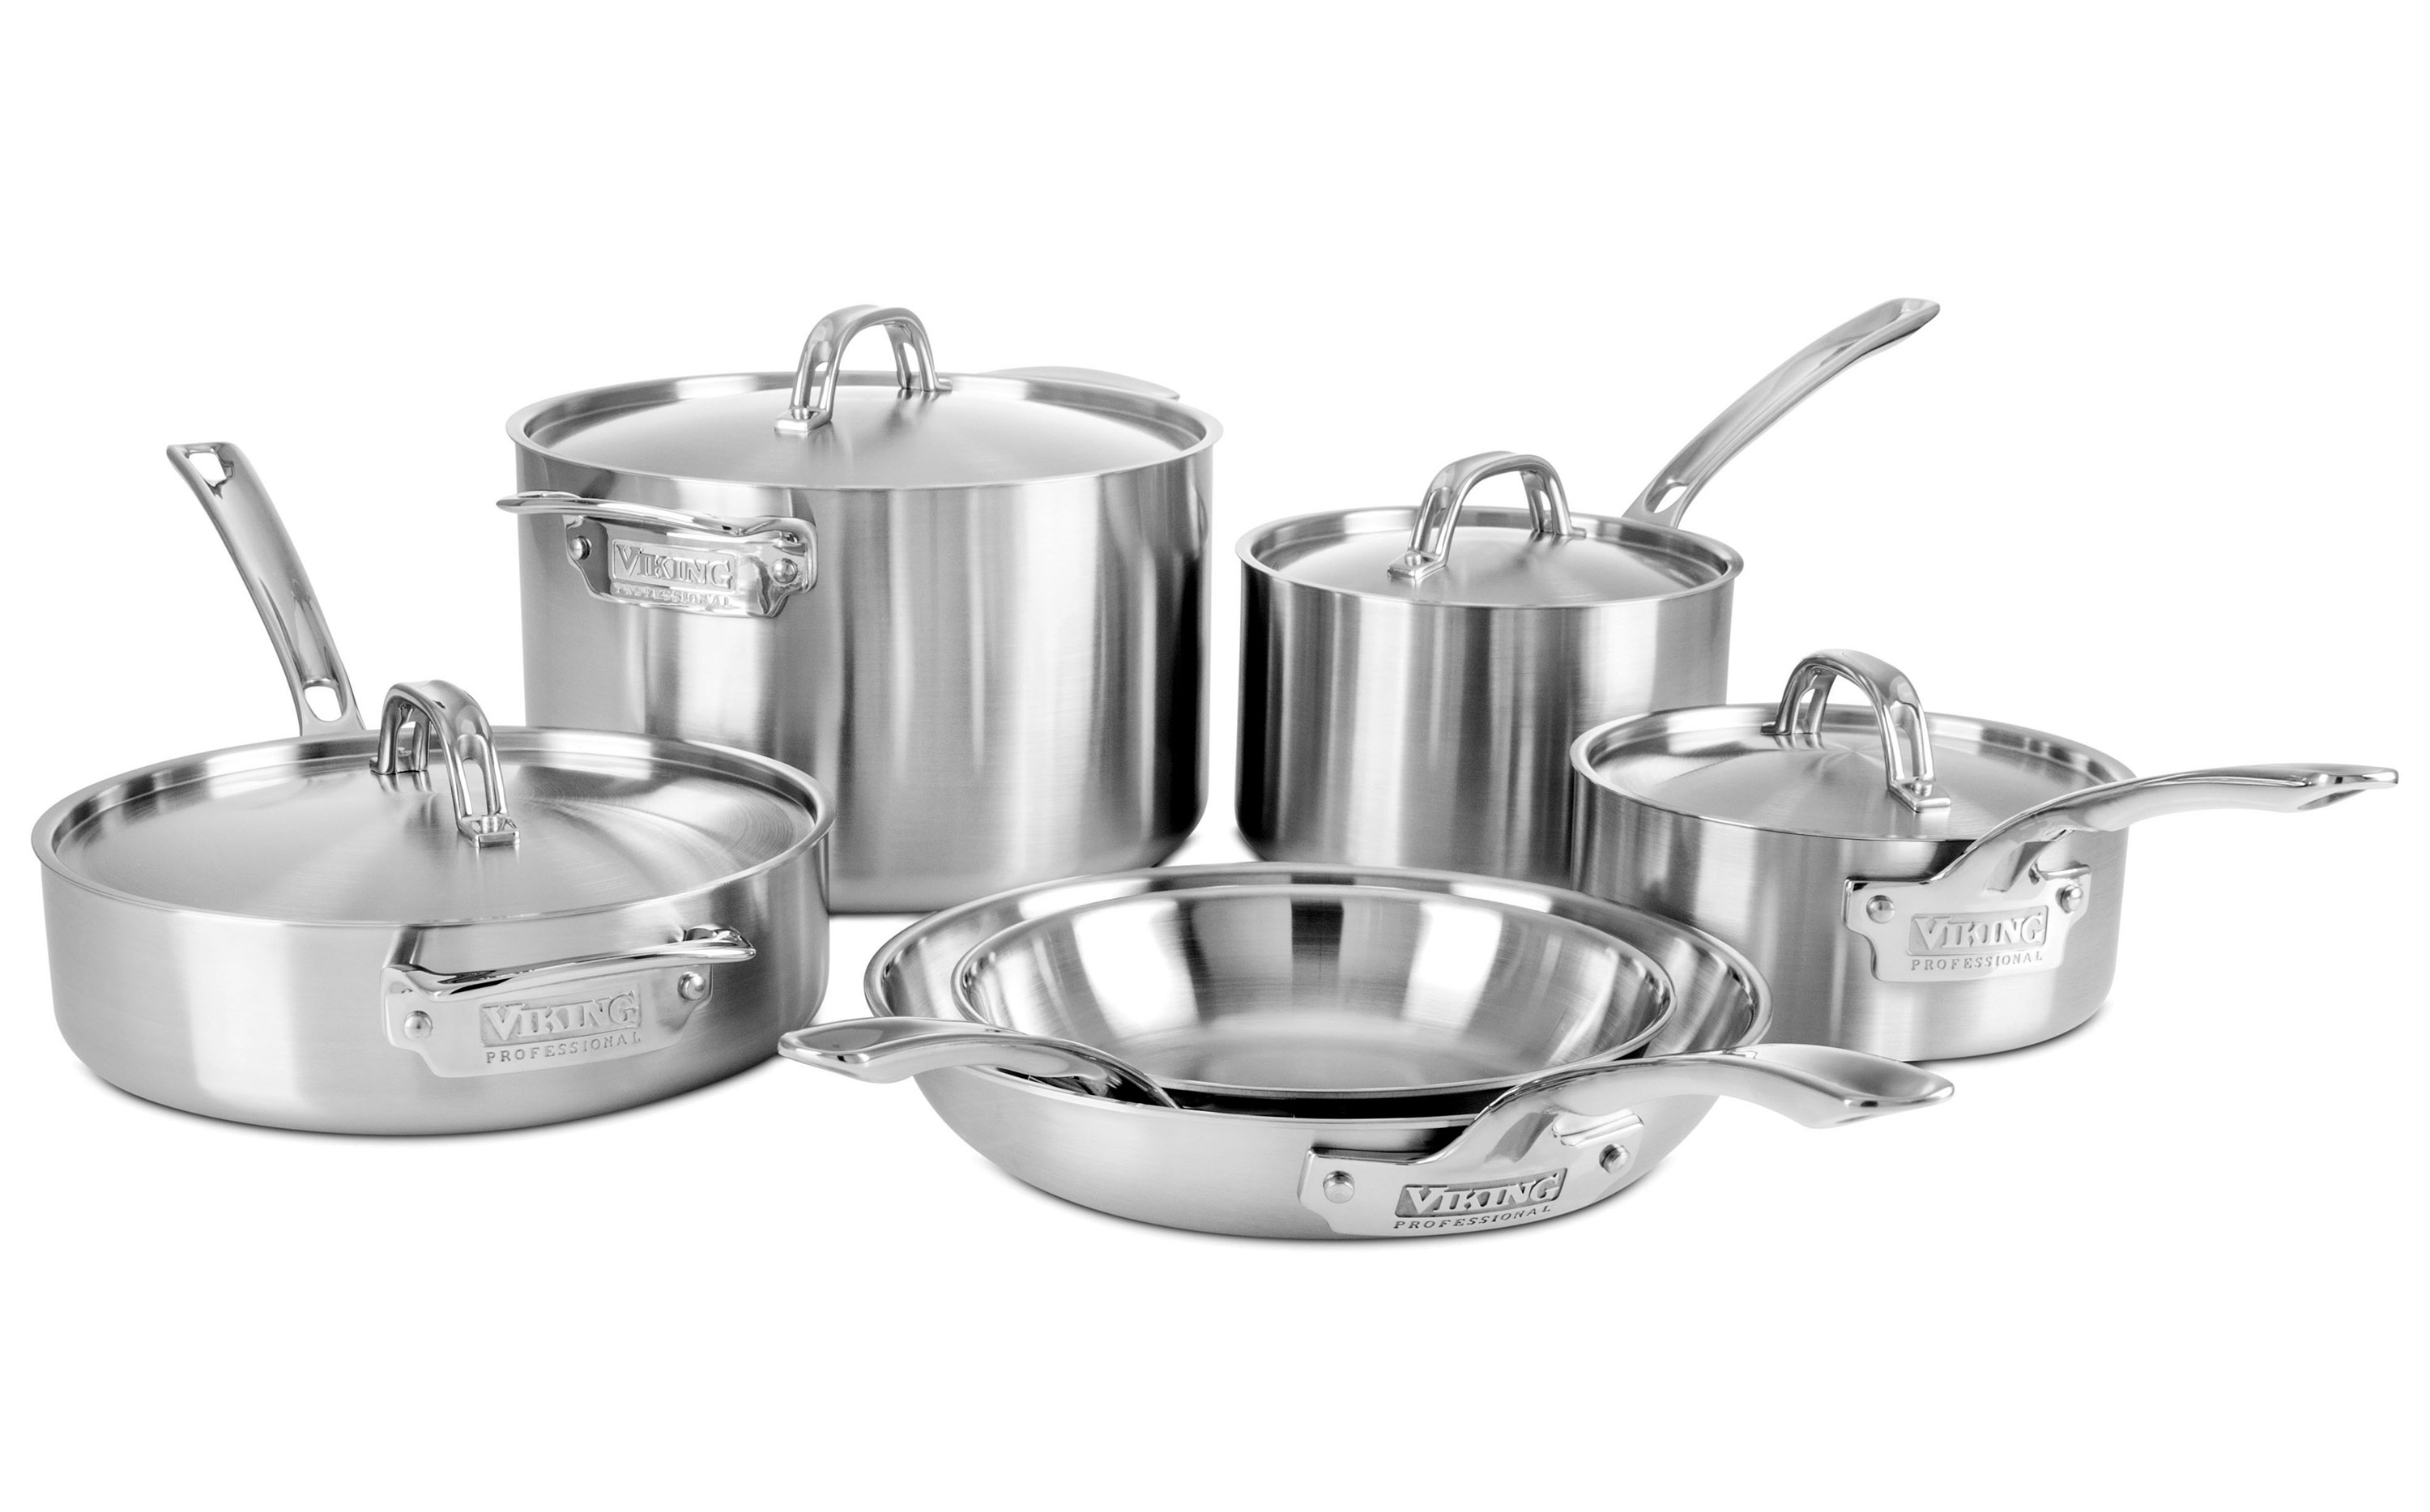 Viking Professional 5 Ply Stainless Steel Cookware Set 10